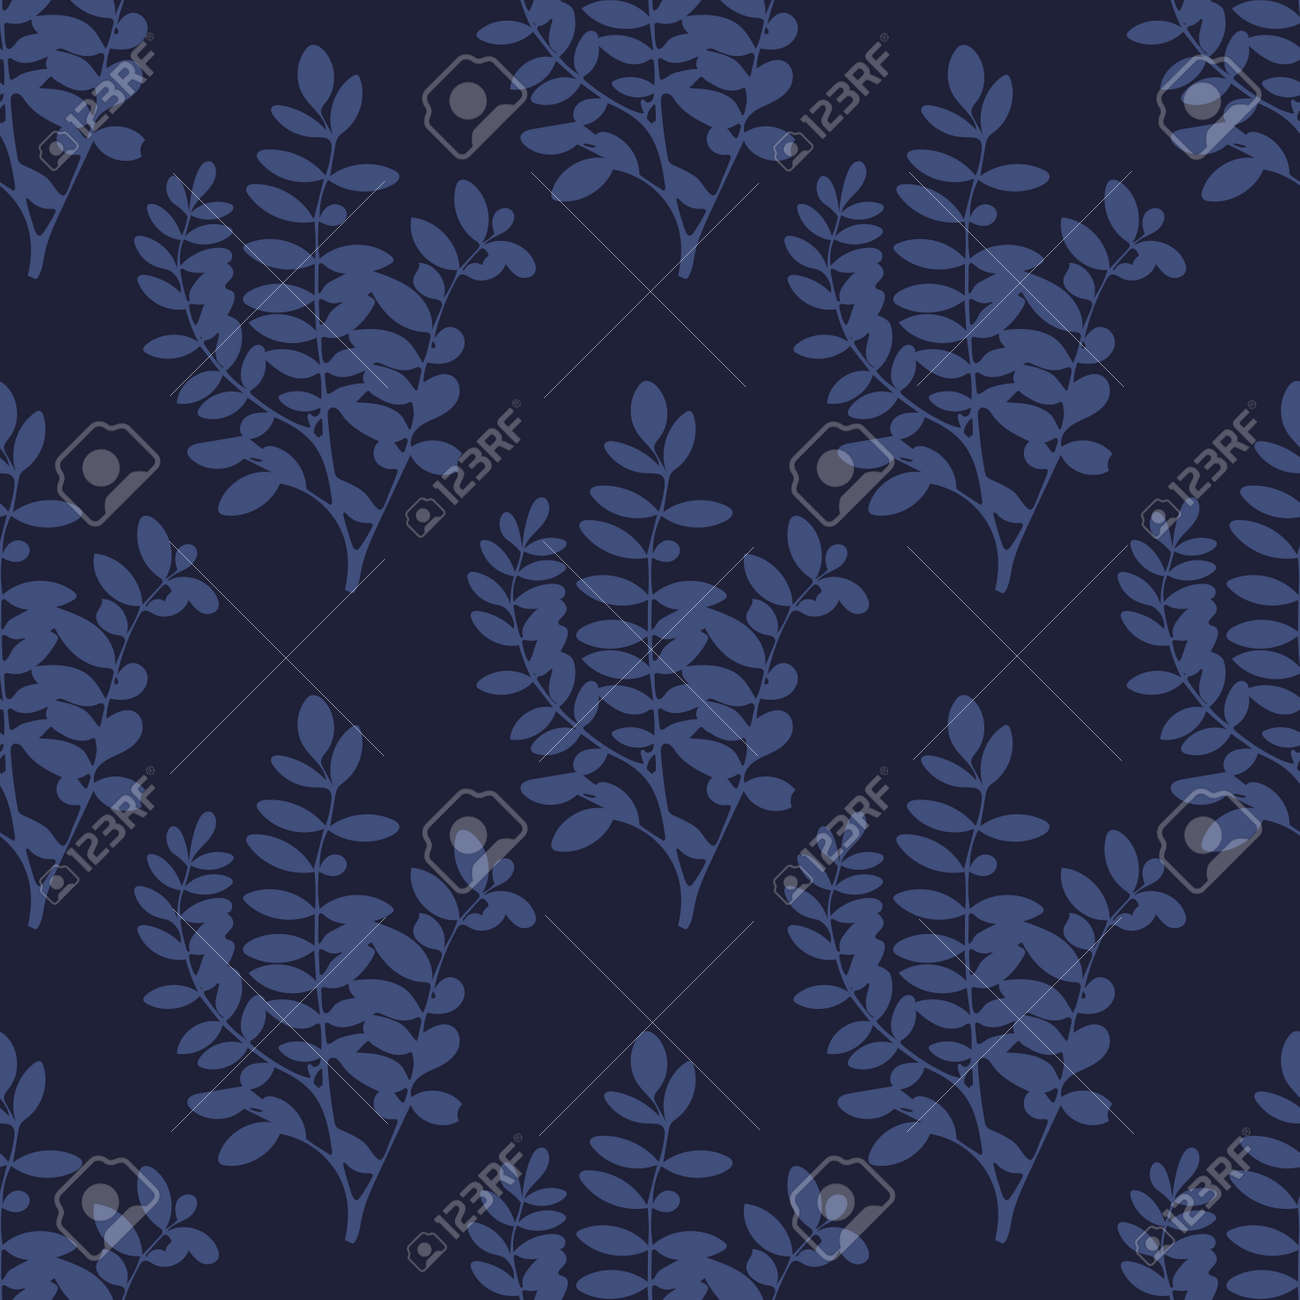 Navy Blue Tree Leaves And Branches Seamless Pattern Floral